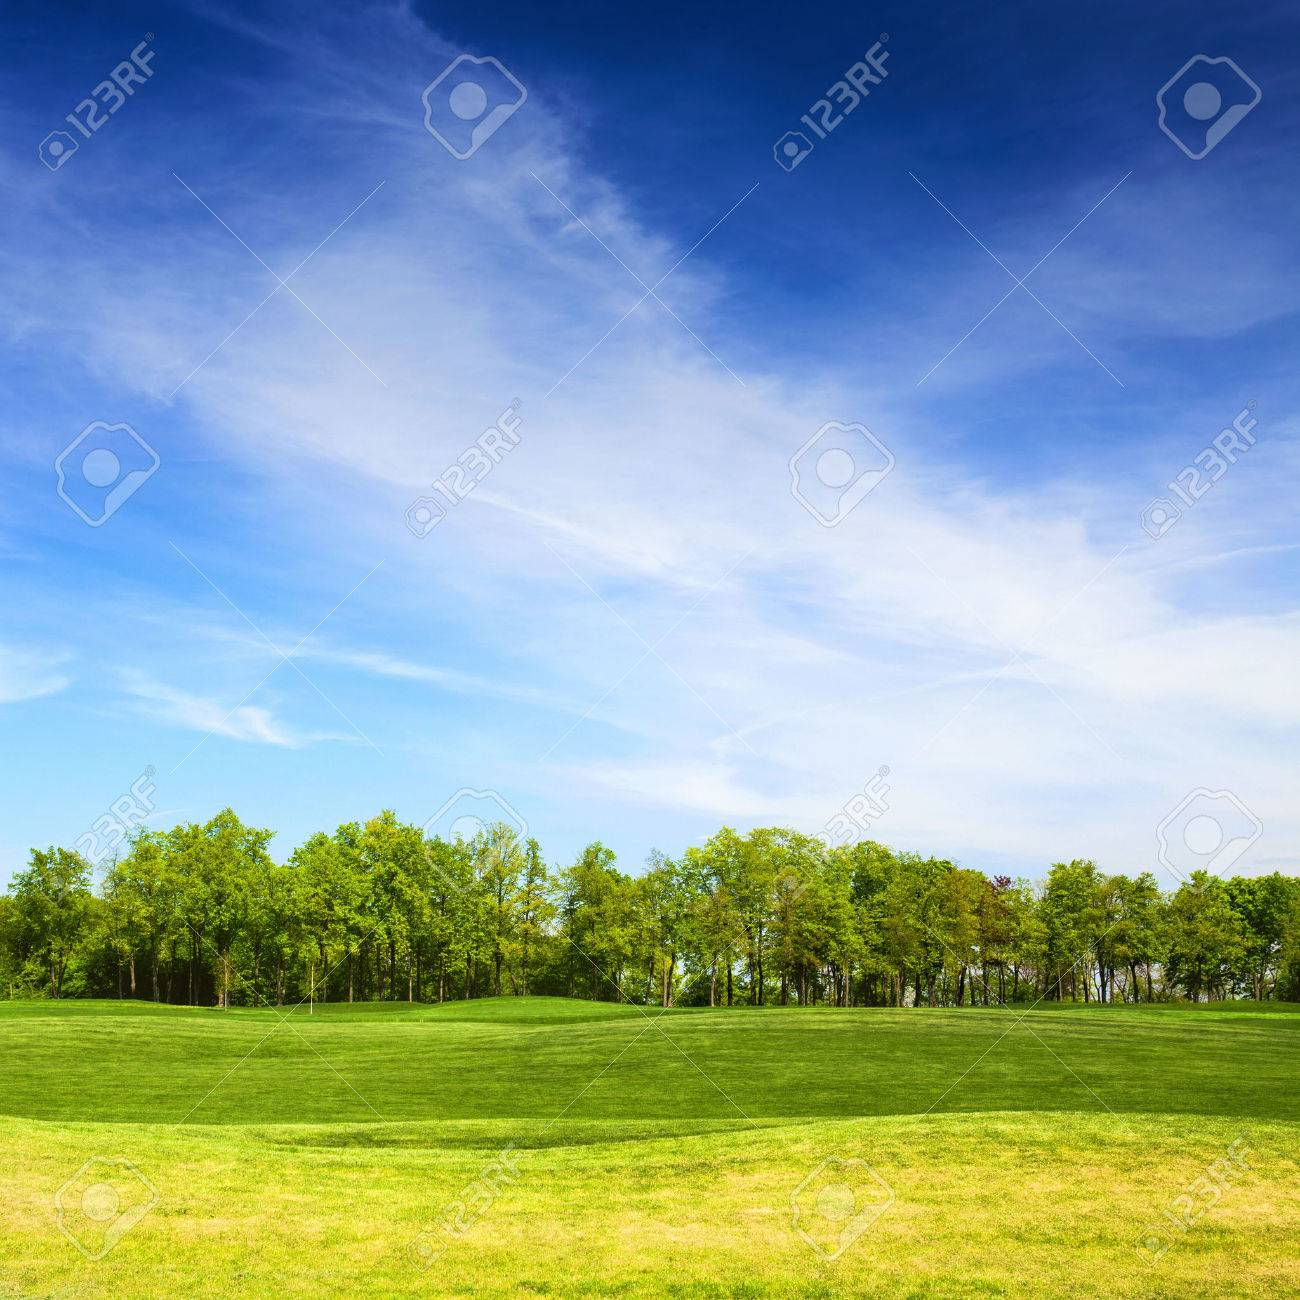 grassy field background. Grassy Field And Trees With Blue Sky On Background, Landscape In Summer Day  Stock Photo Background C